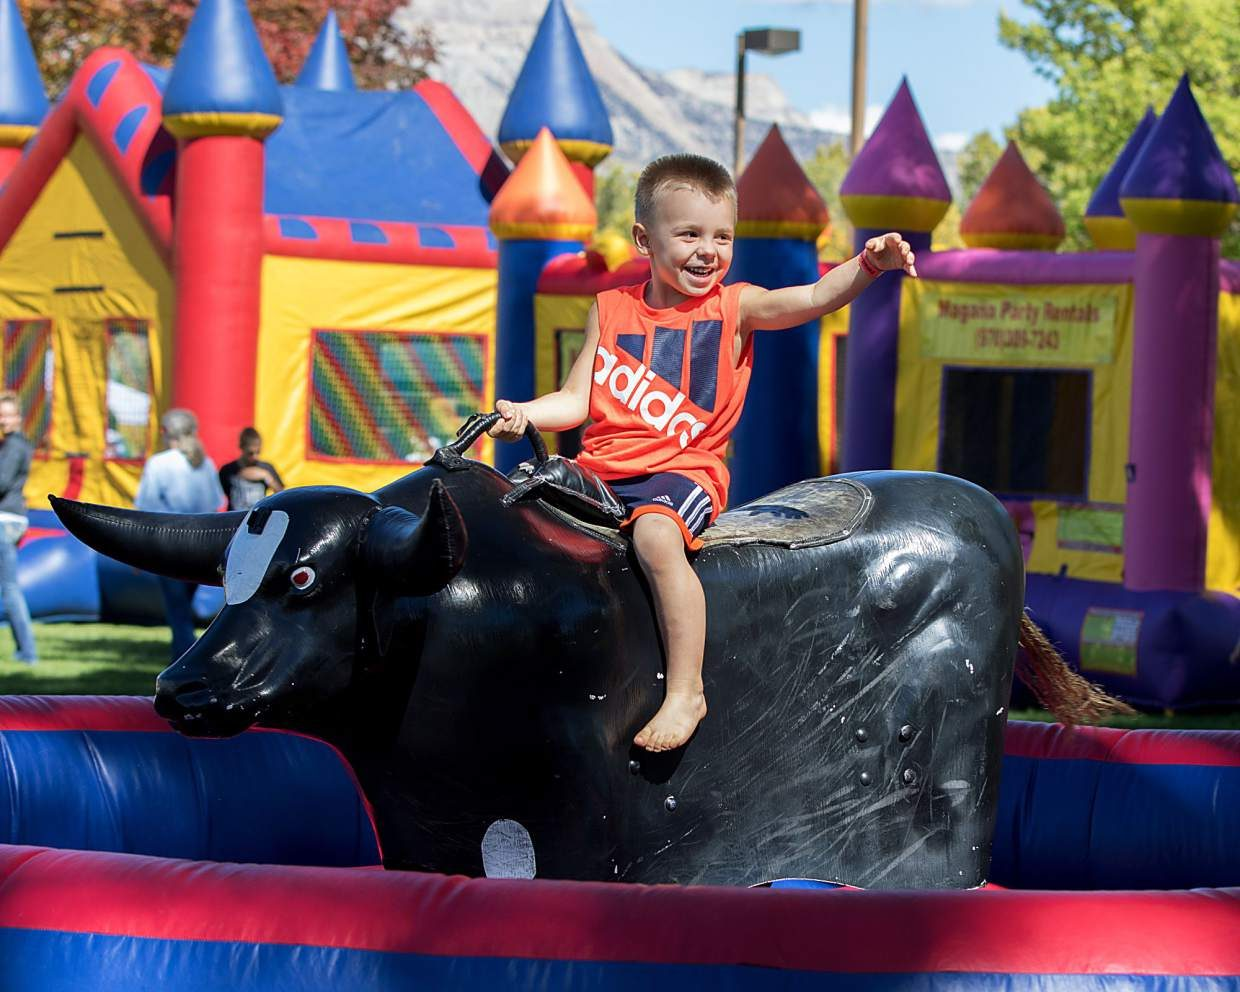 A young boy rides a mechanical bull.